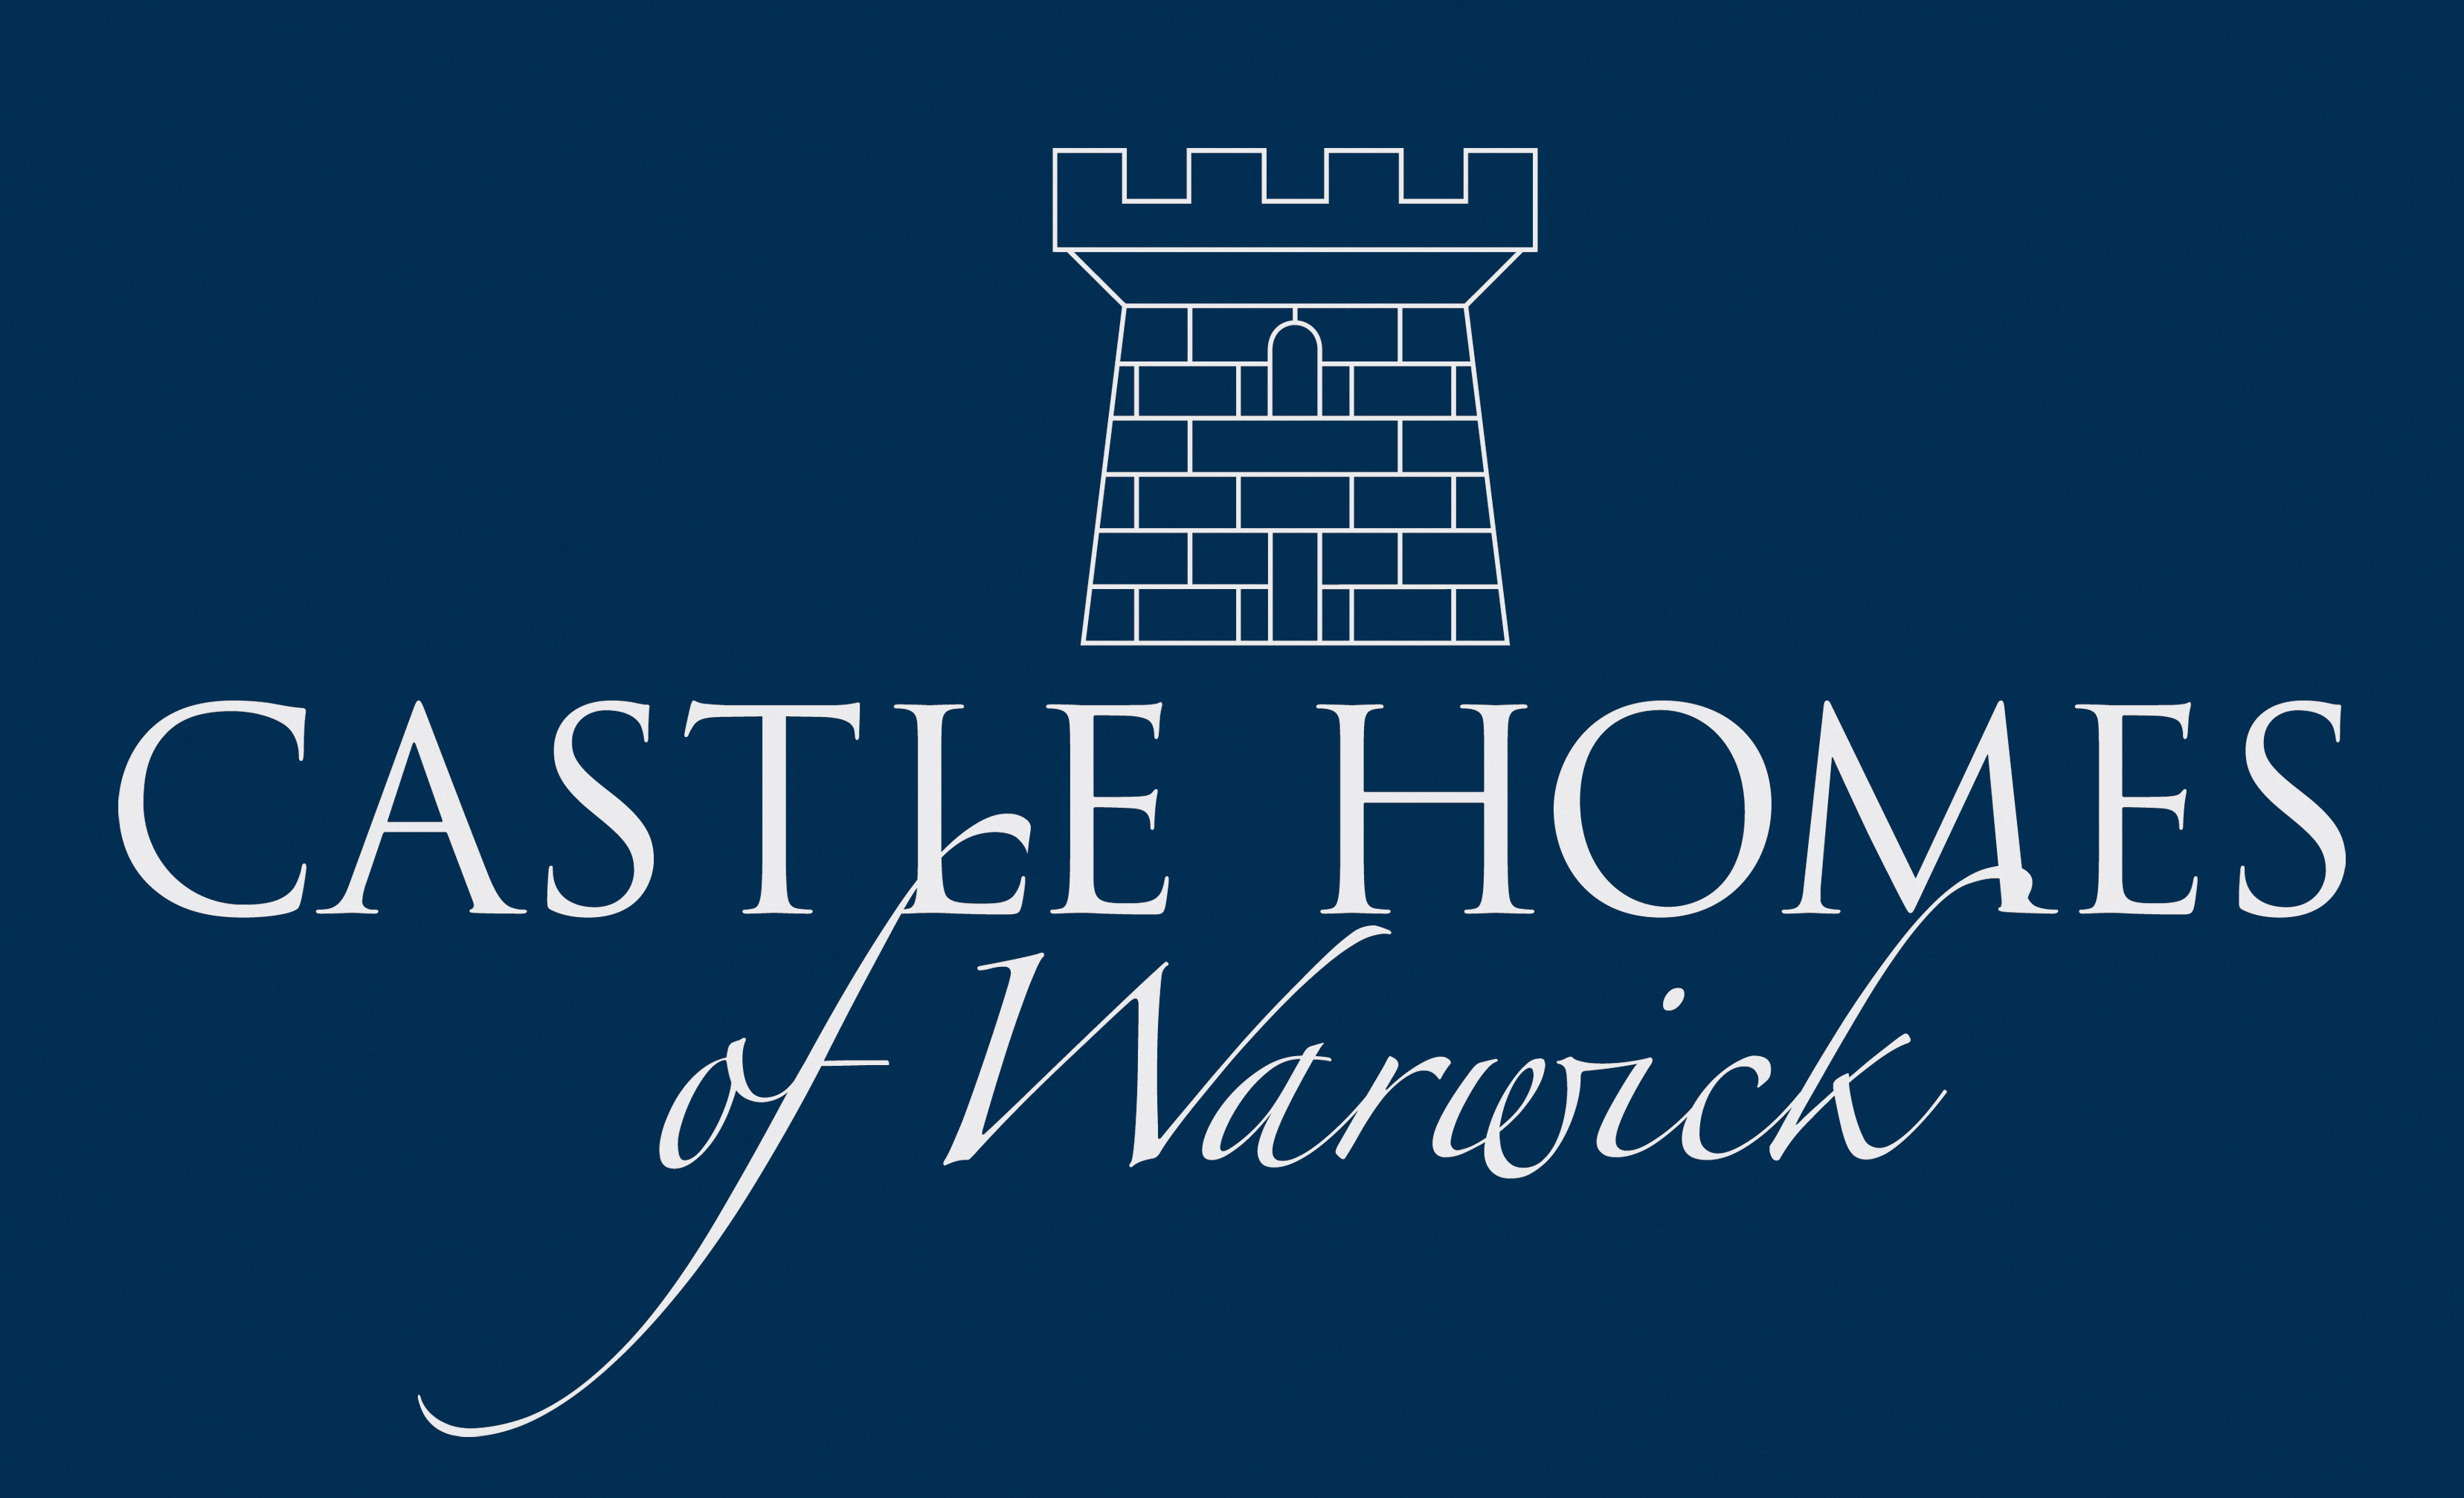 Castle Homes of Warwick